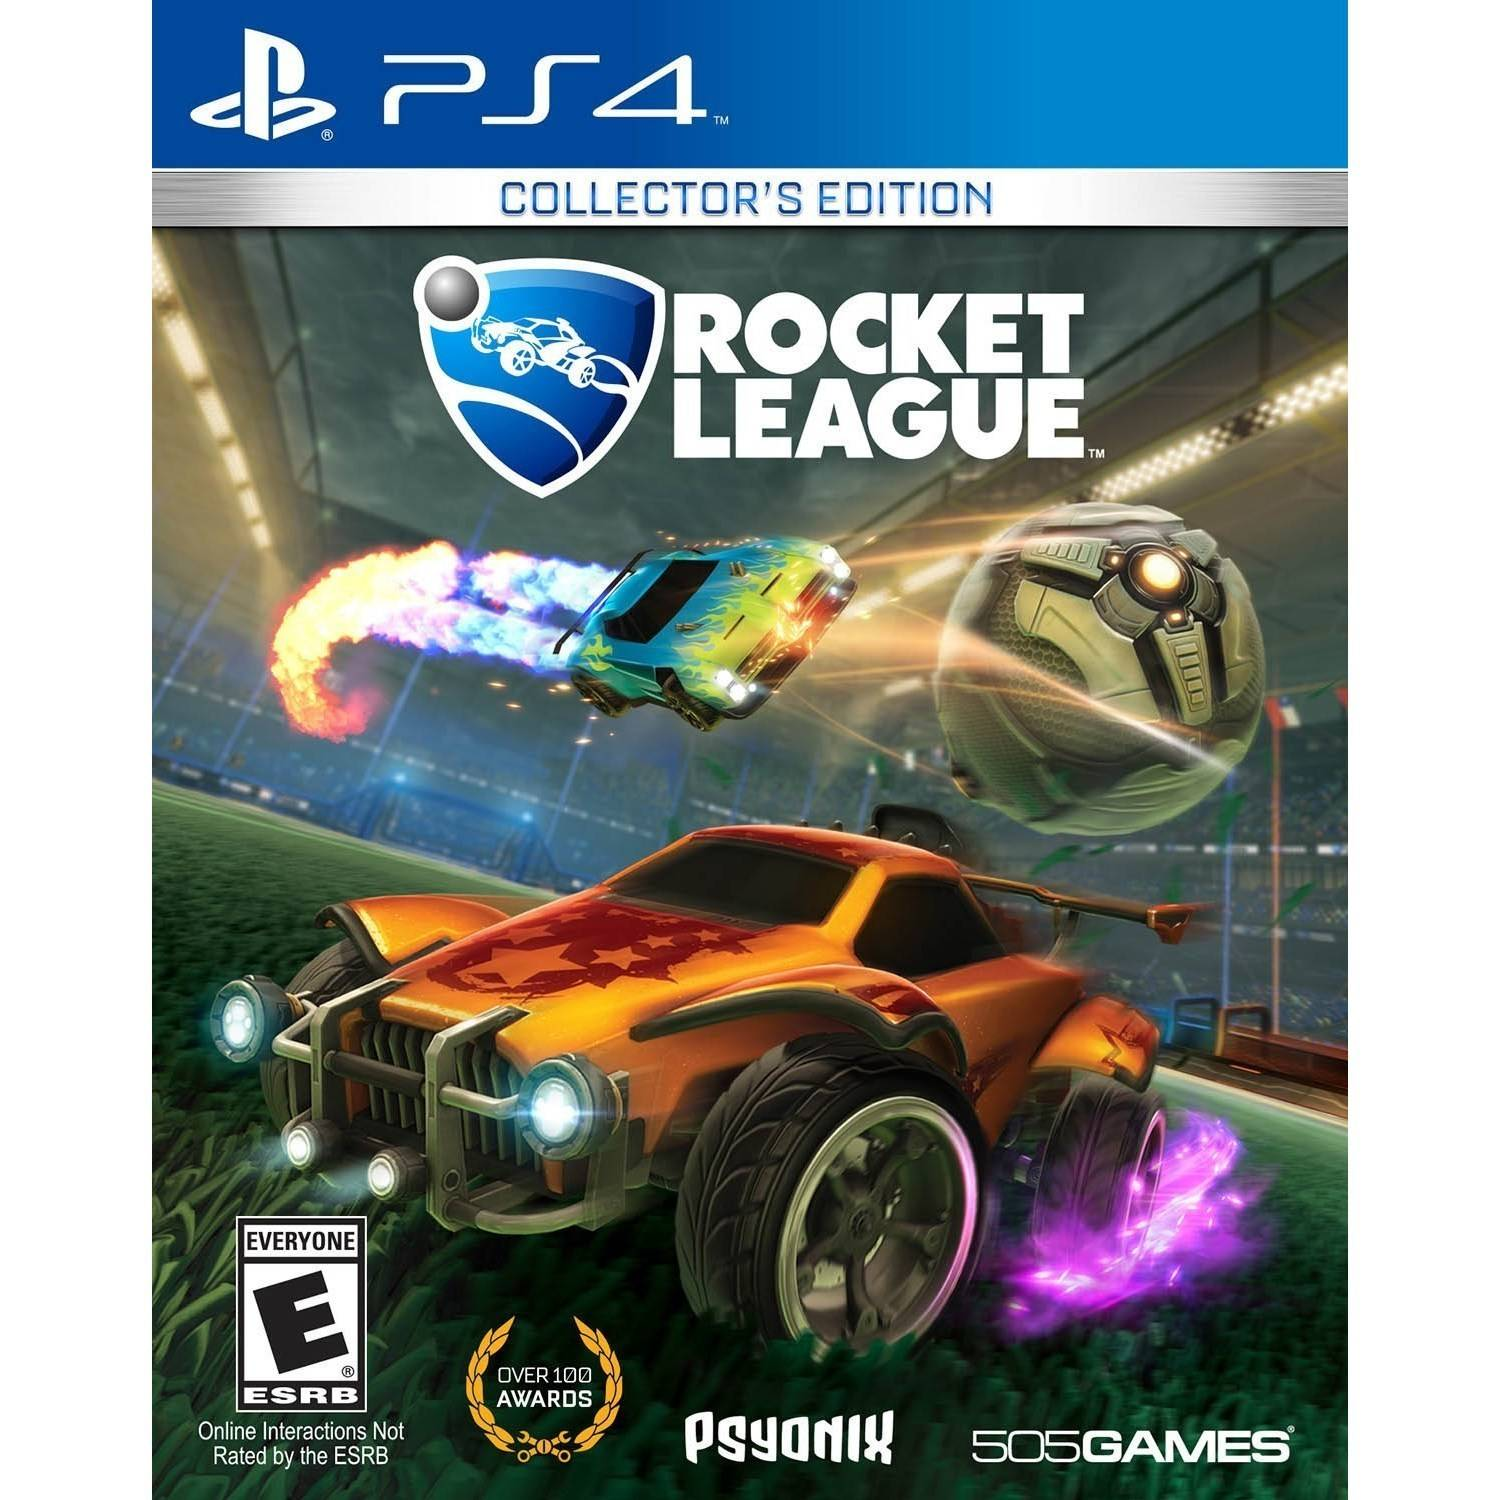 Rocket League Collector's Edition (Playstation 4) by Psyonix